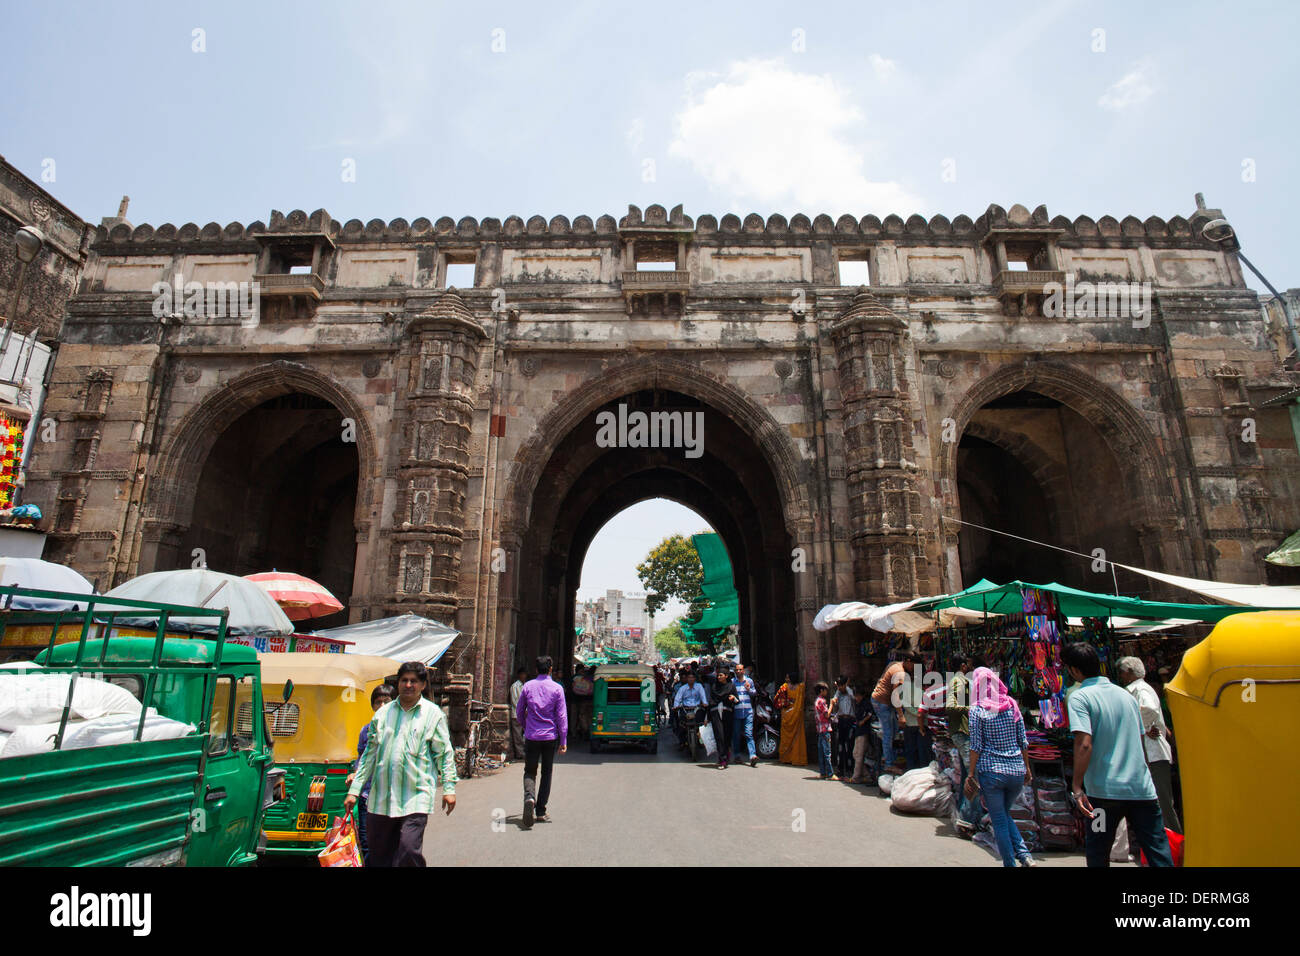 Teen Darwaza, Bhadra Fort, Ahmedabad, Gujarat, India - Stock Image